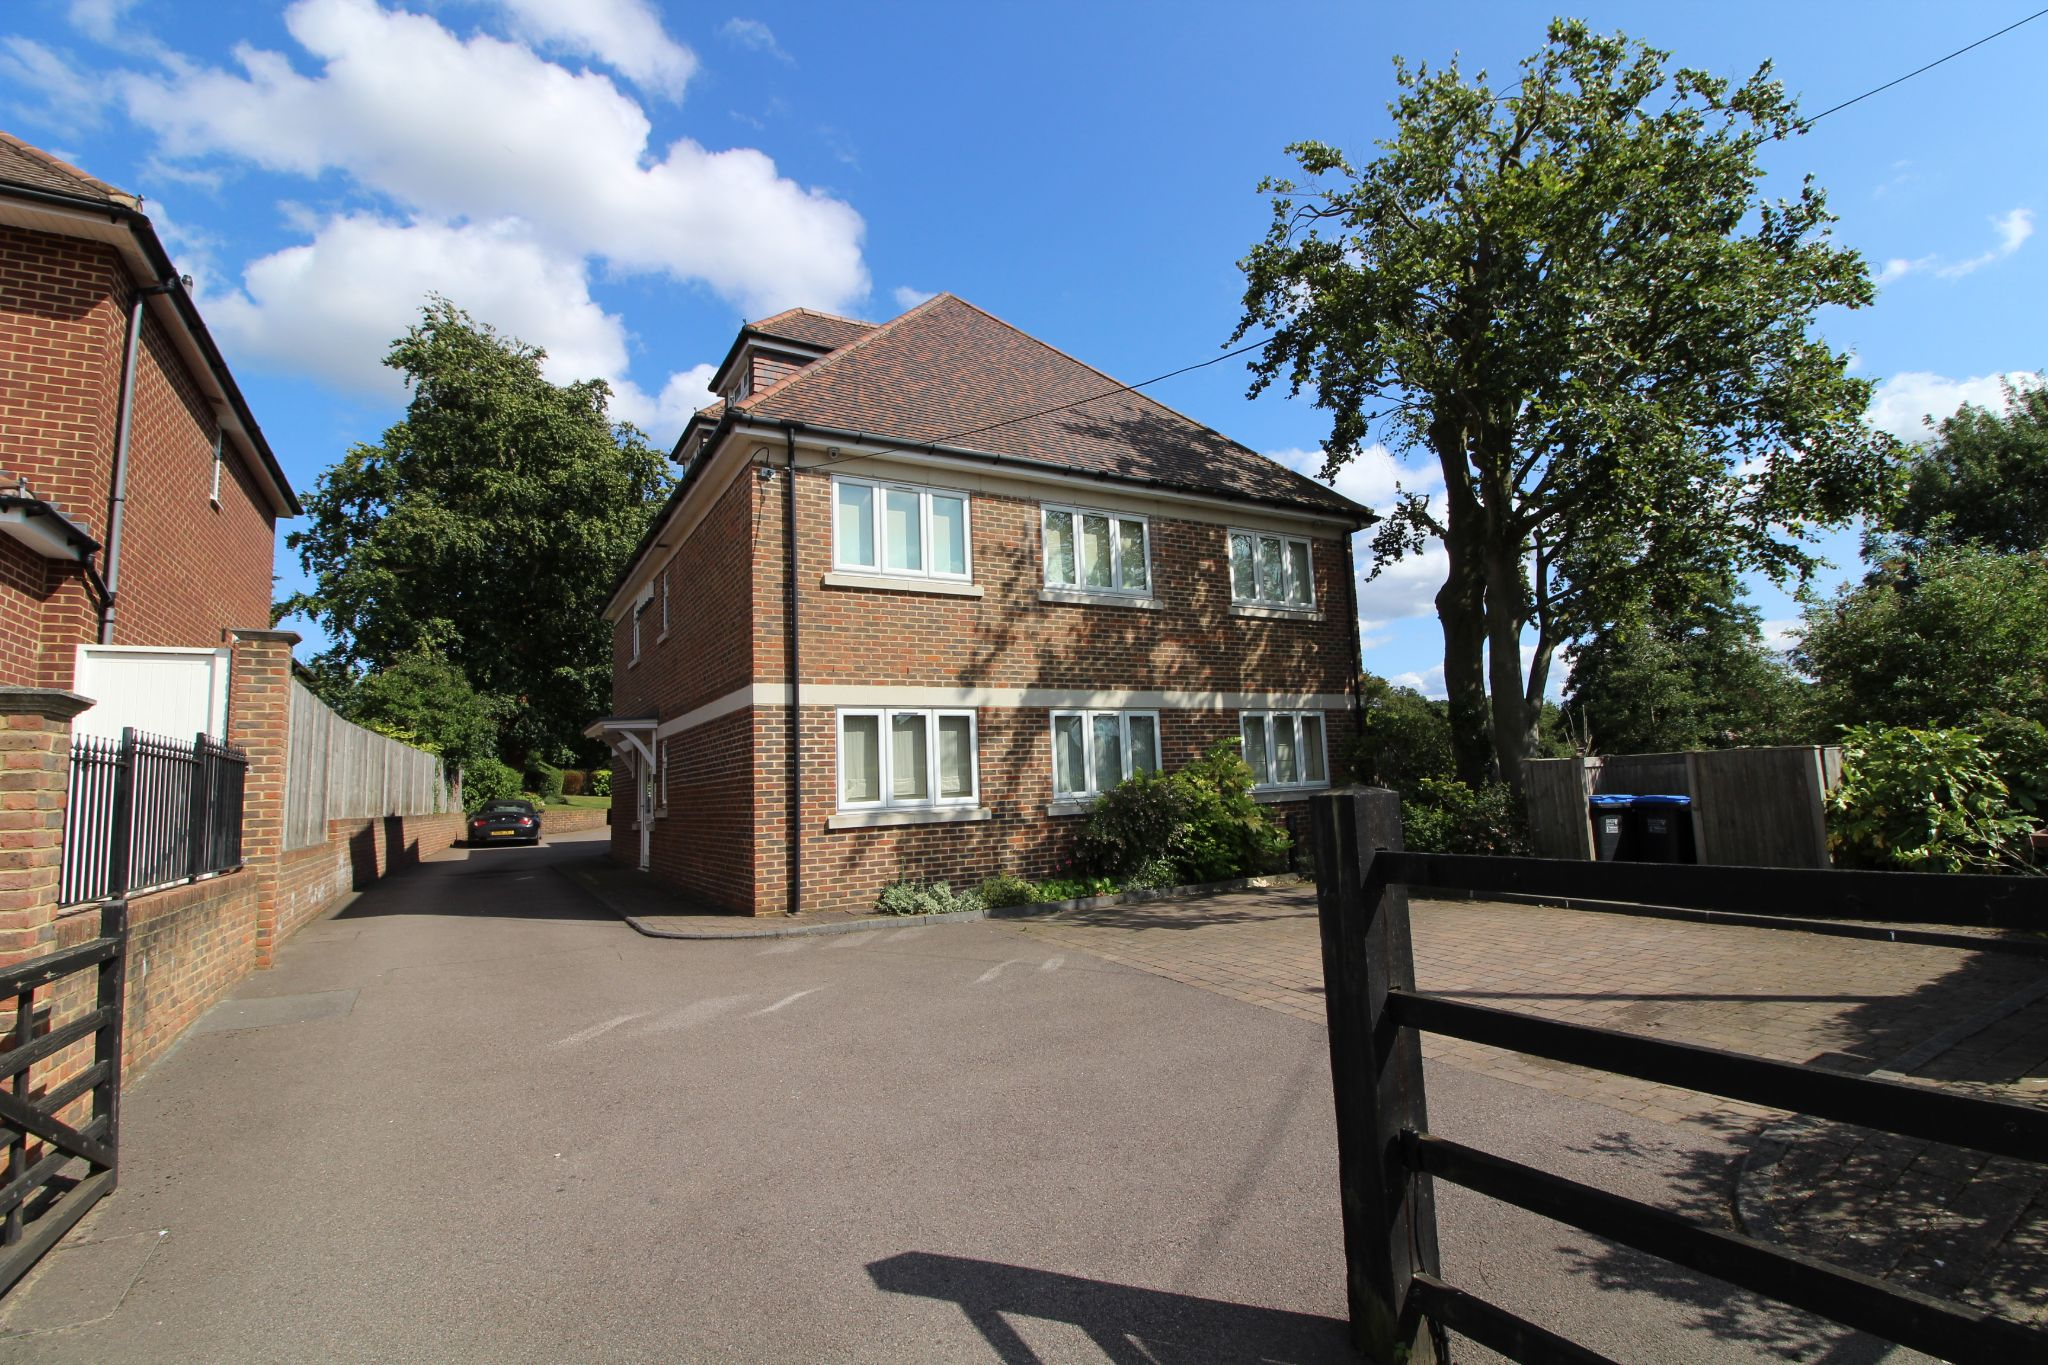 2 bedroom ground floor flat/apartment For Sale in Brookmans Park - Property photograph